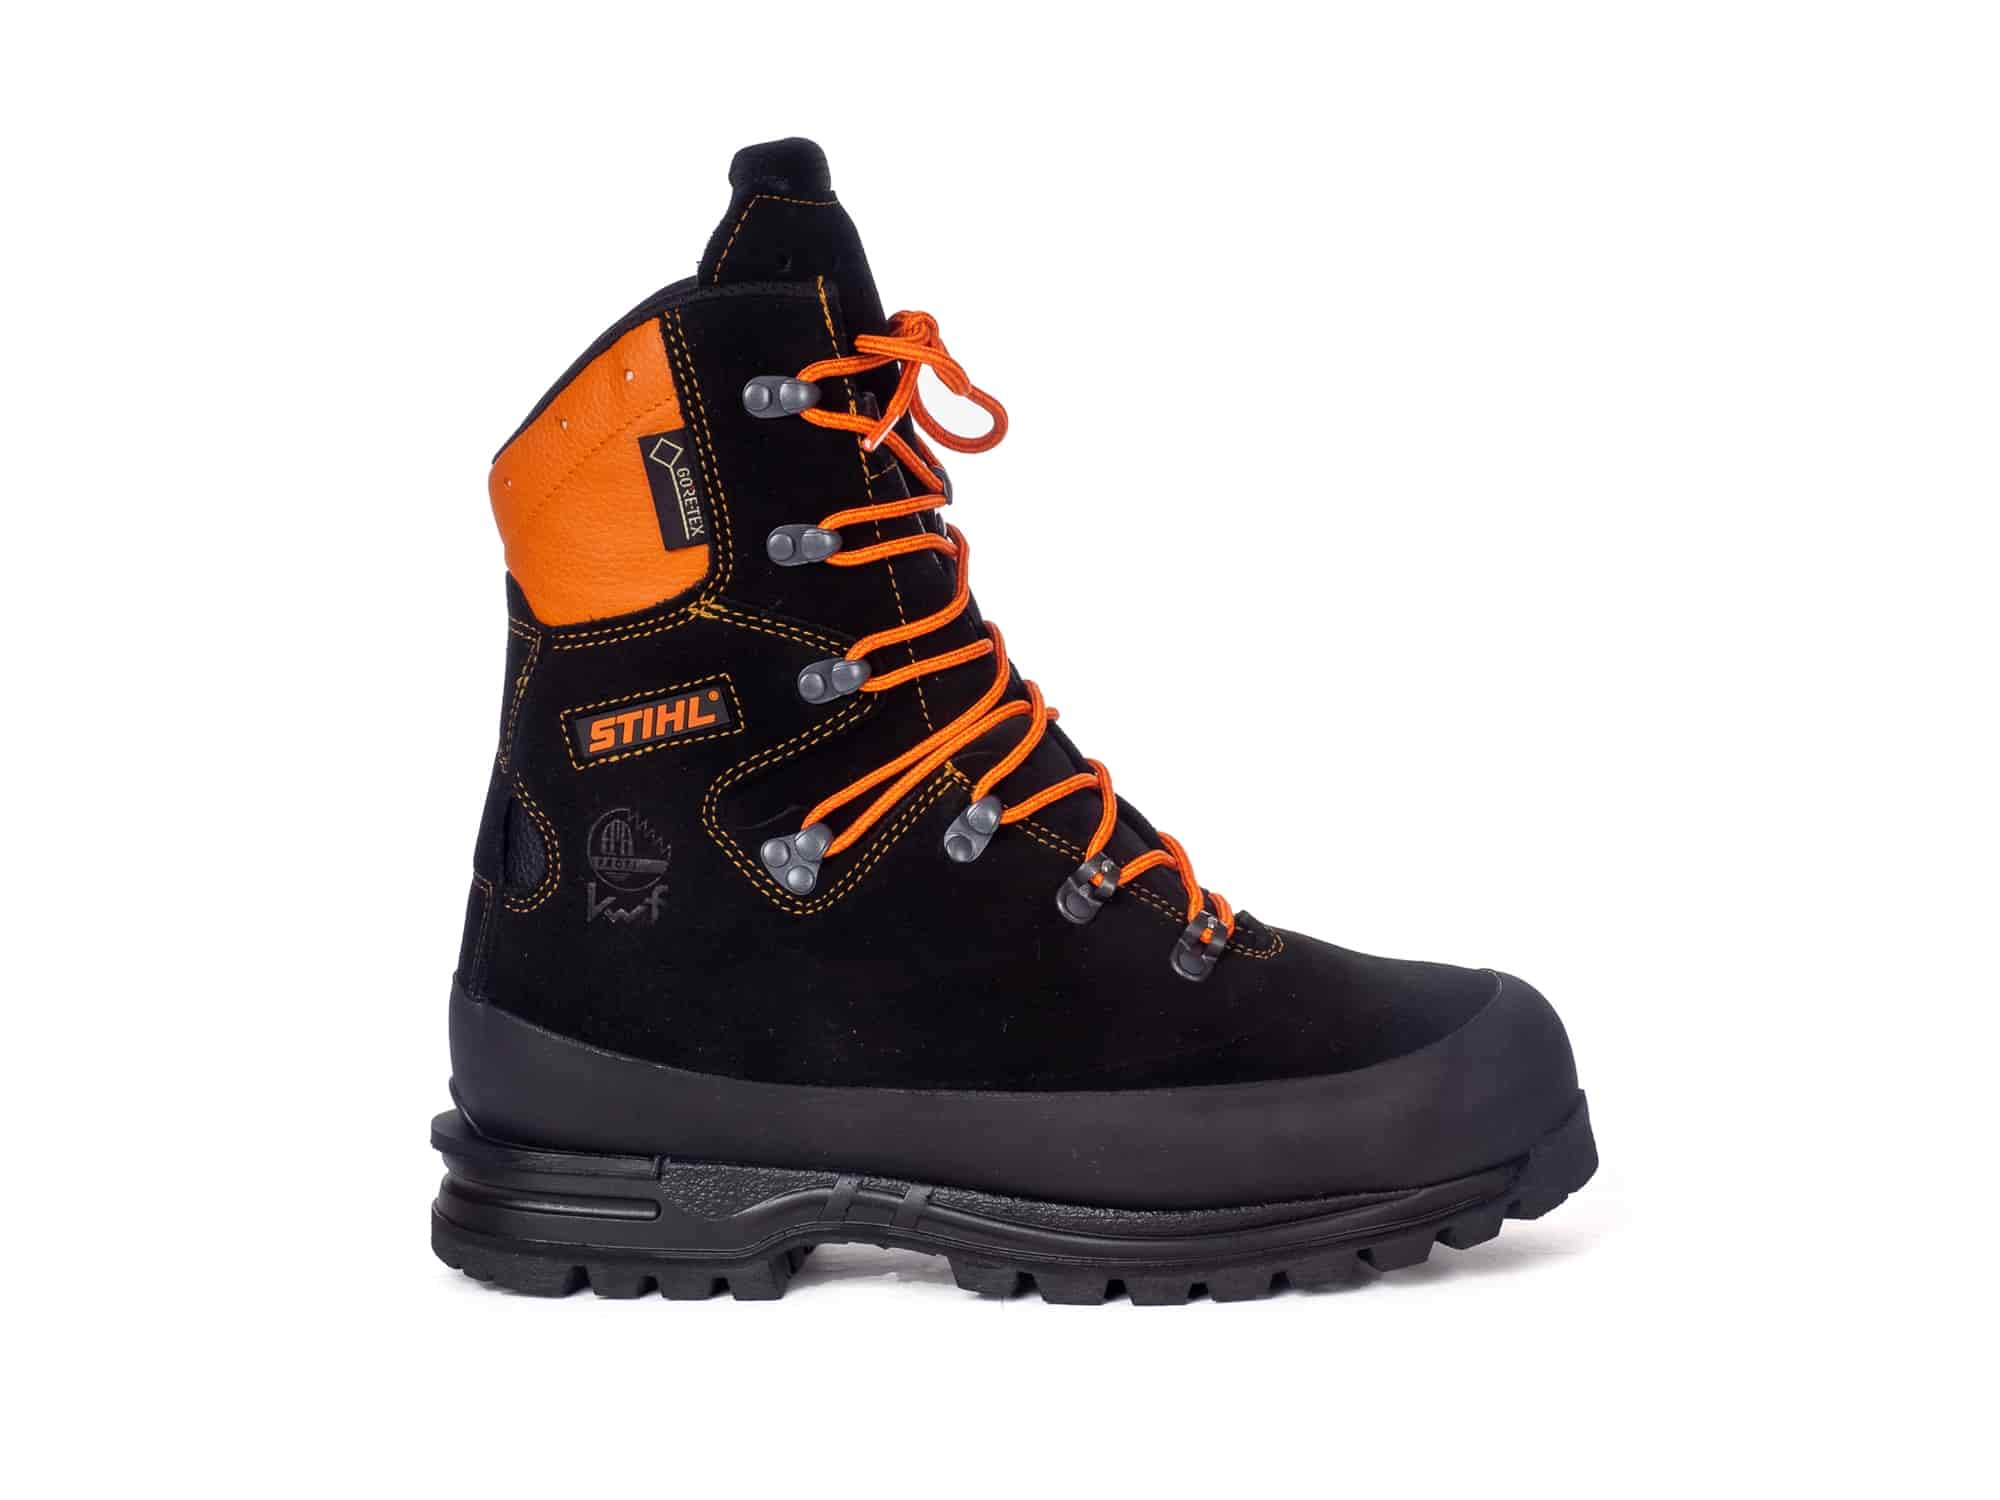 Stihl Advanced GTX